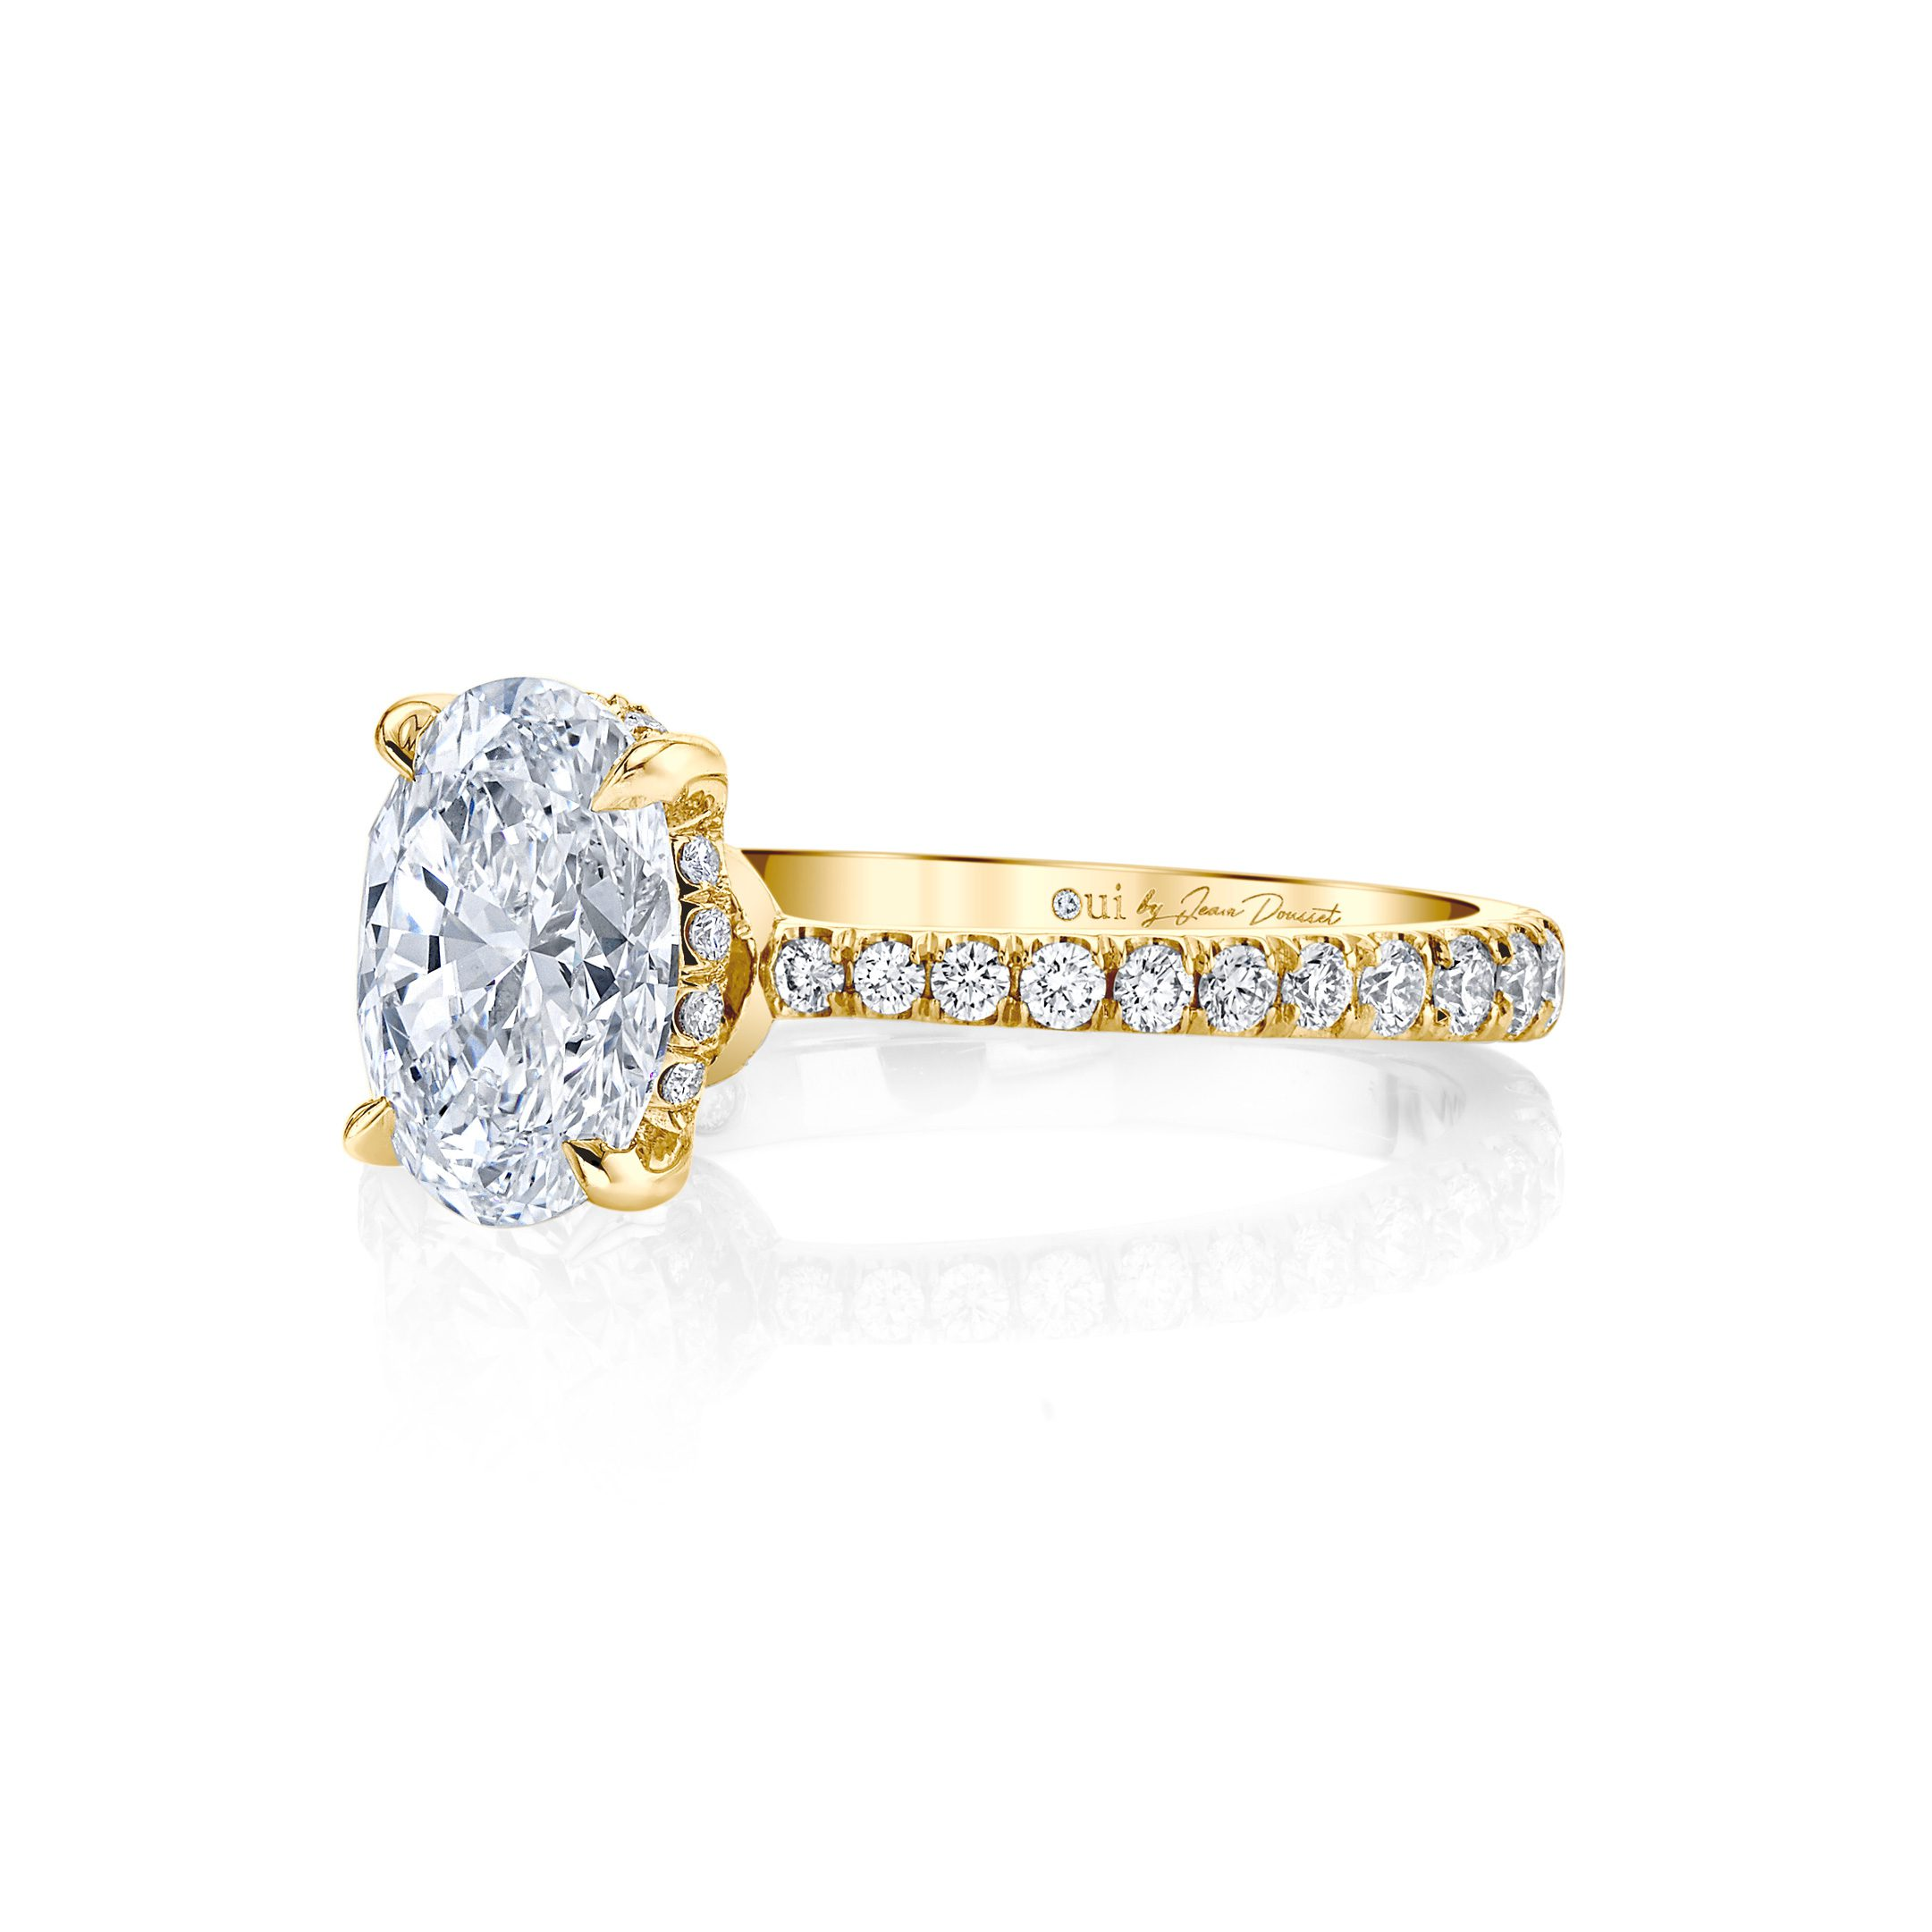 Eloise Oval Solitaire Engagement Ring with a diamond pavé band in 18k Yellow Gold Side View by Oui by Jean Dousset